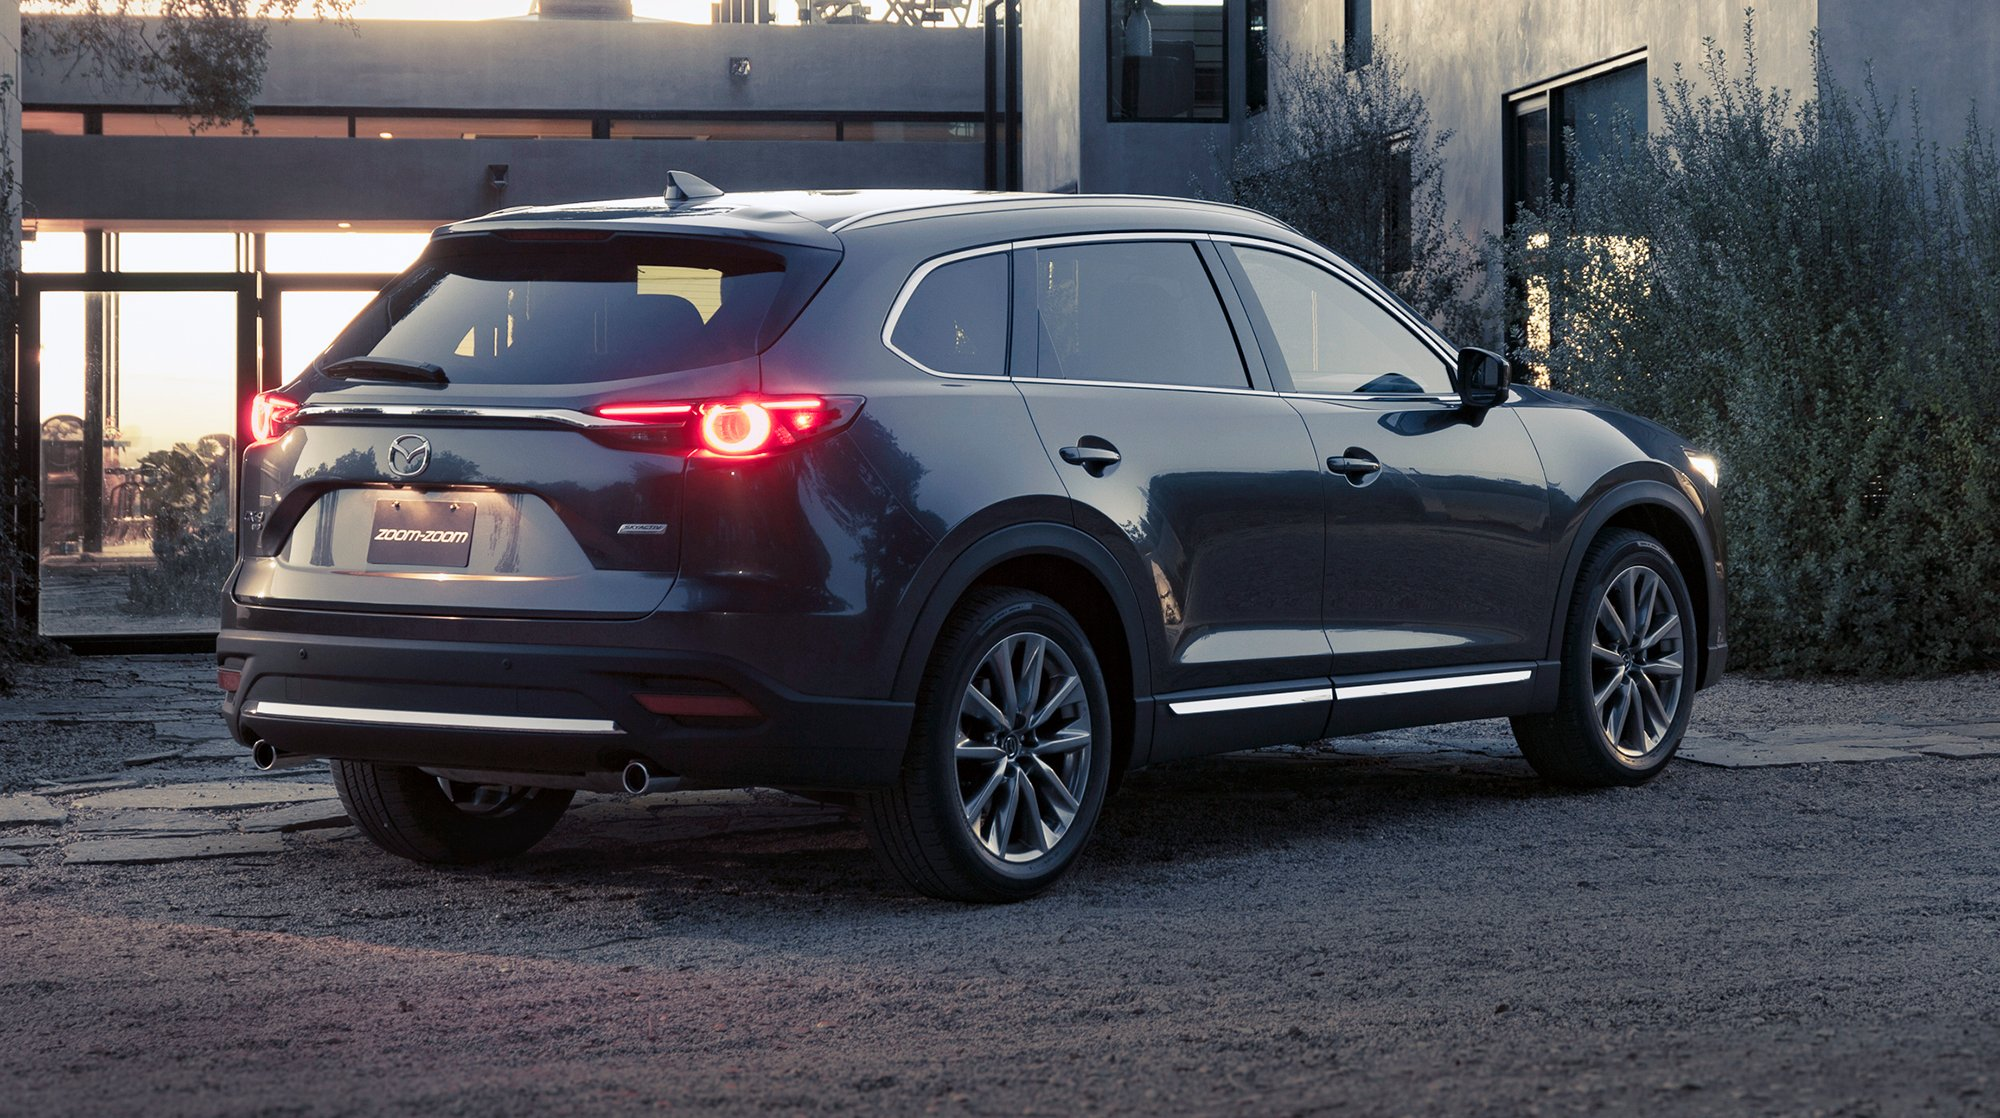 Mazda Cx 5 Awd >> 2016 Mazda CX-9 revealed with new 2.5 turbo engine - photos | CarAdvice